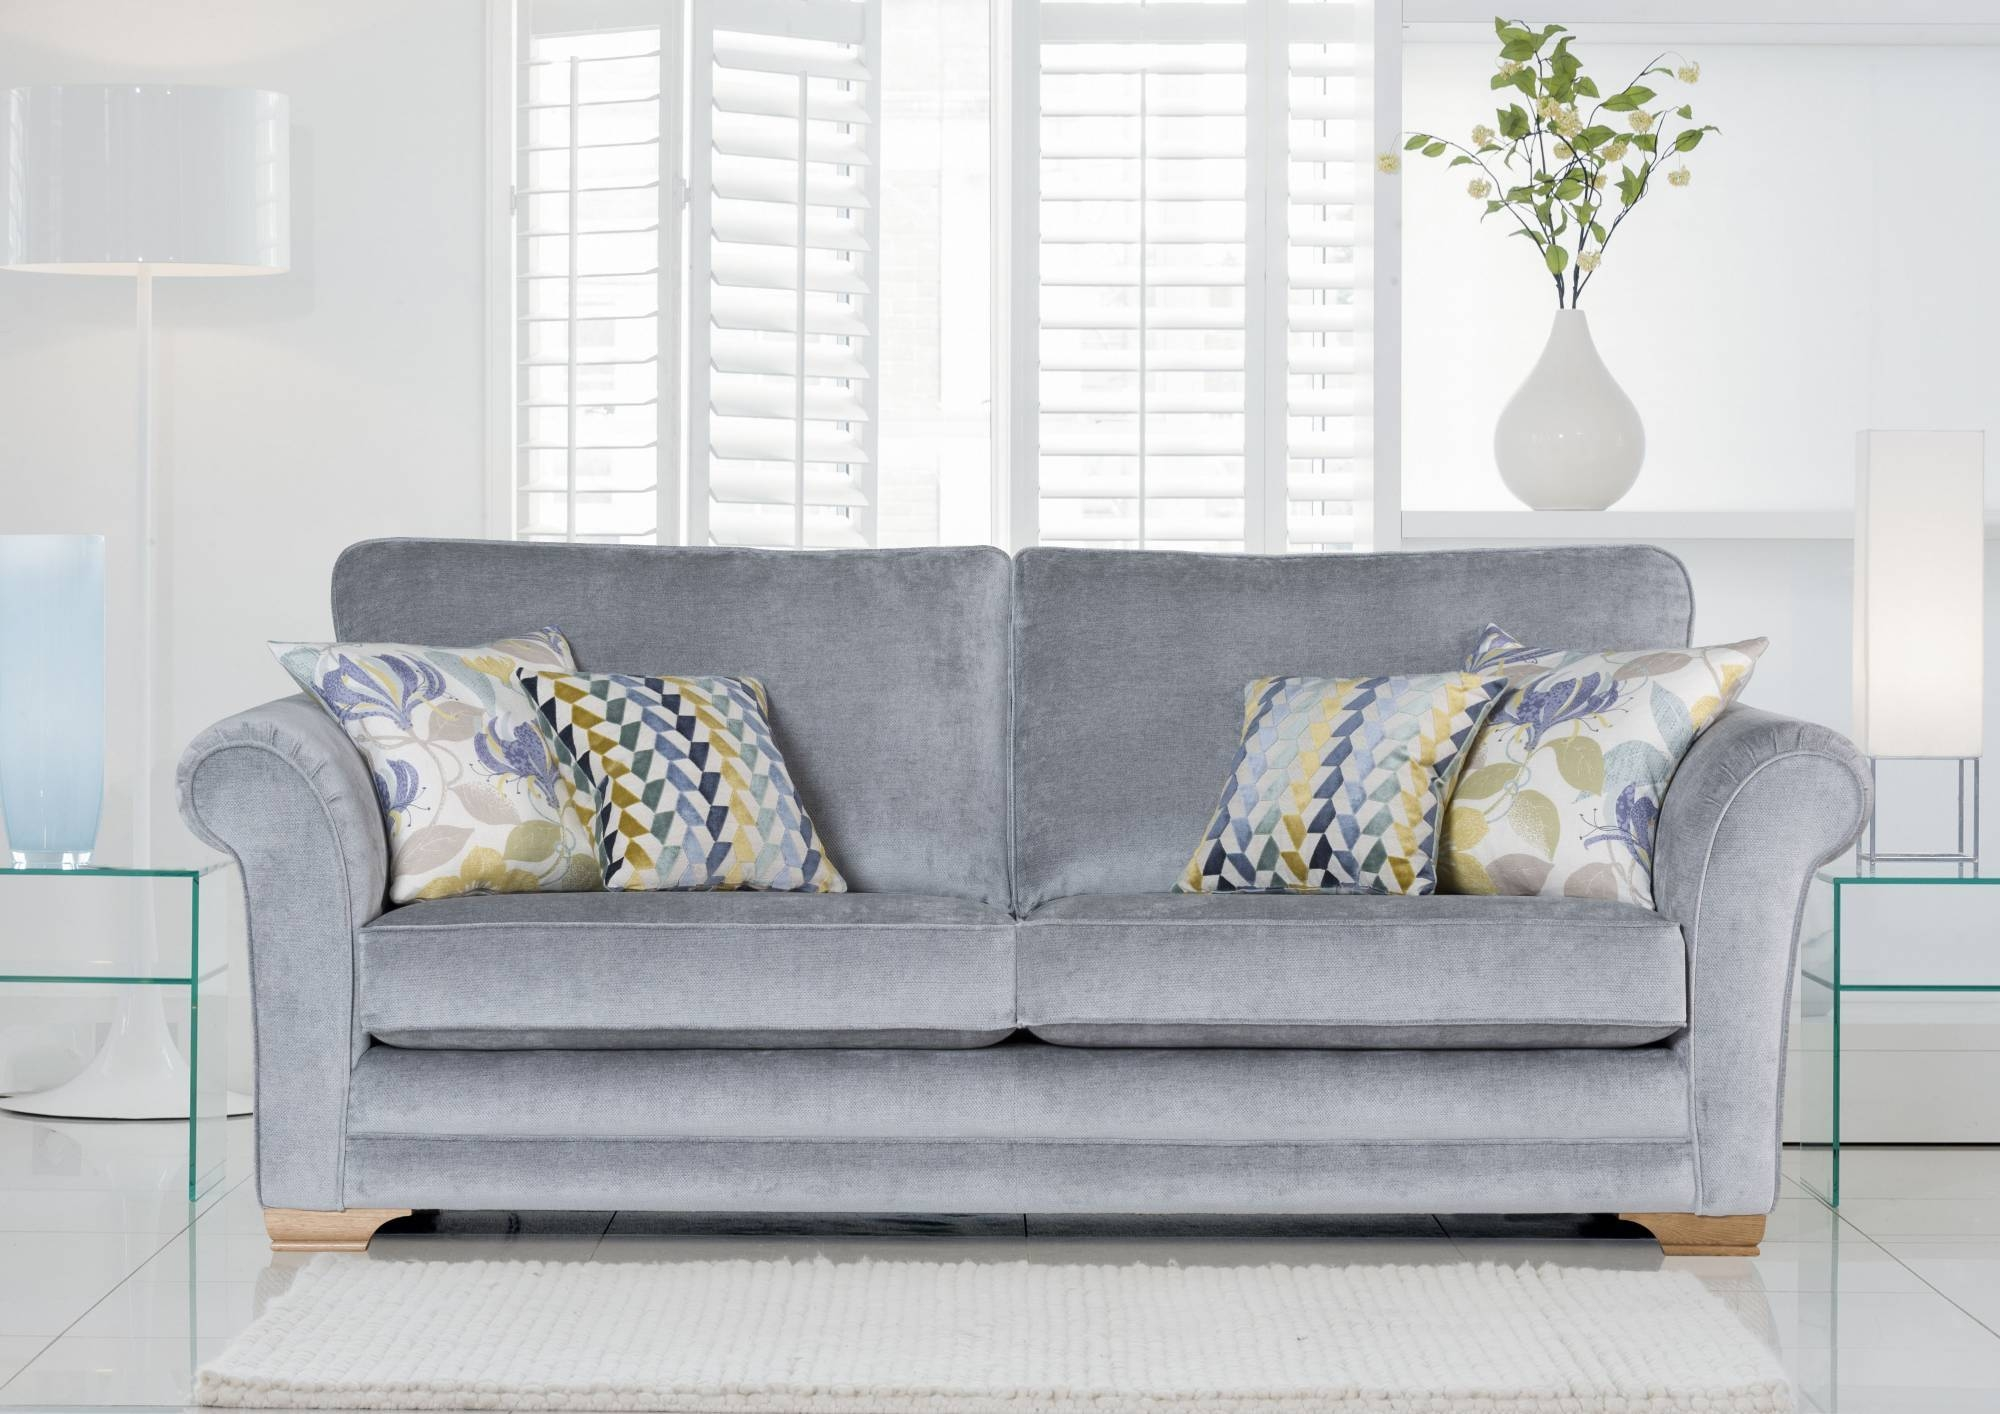 3 Seater Sofas - Sofas And Chairs regarding Newport Sofas (Image 1 of 30)